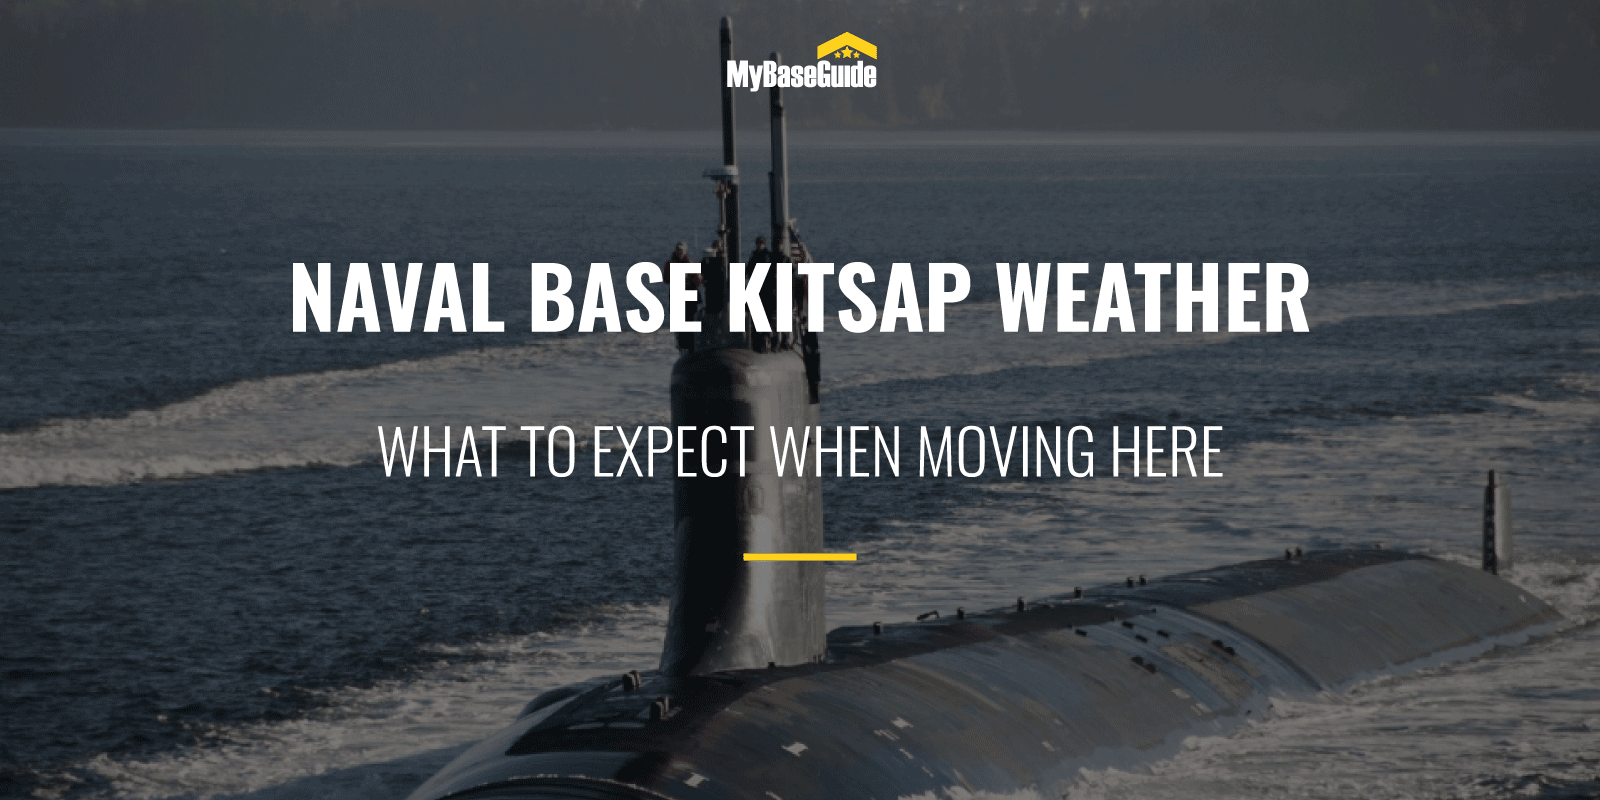 Naval Base Kitsap Weather: What To Expect When Moving Here